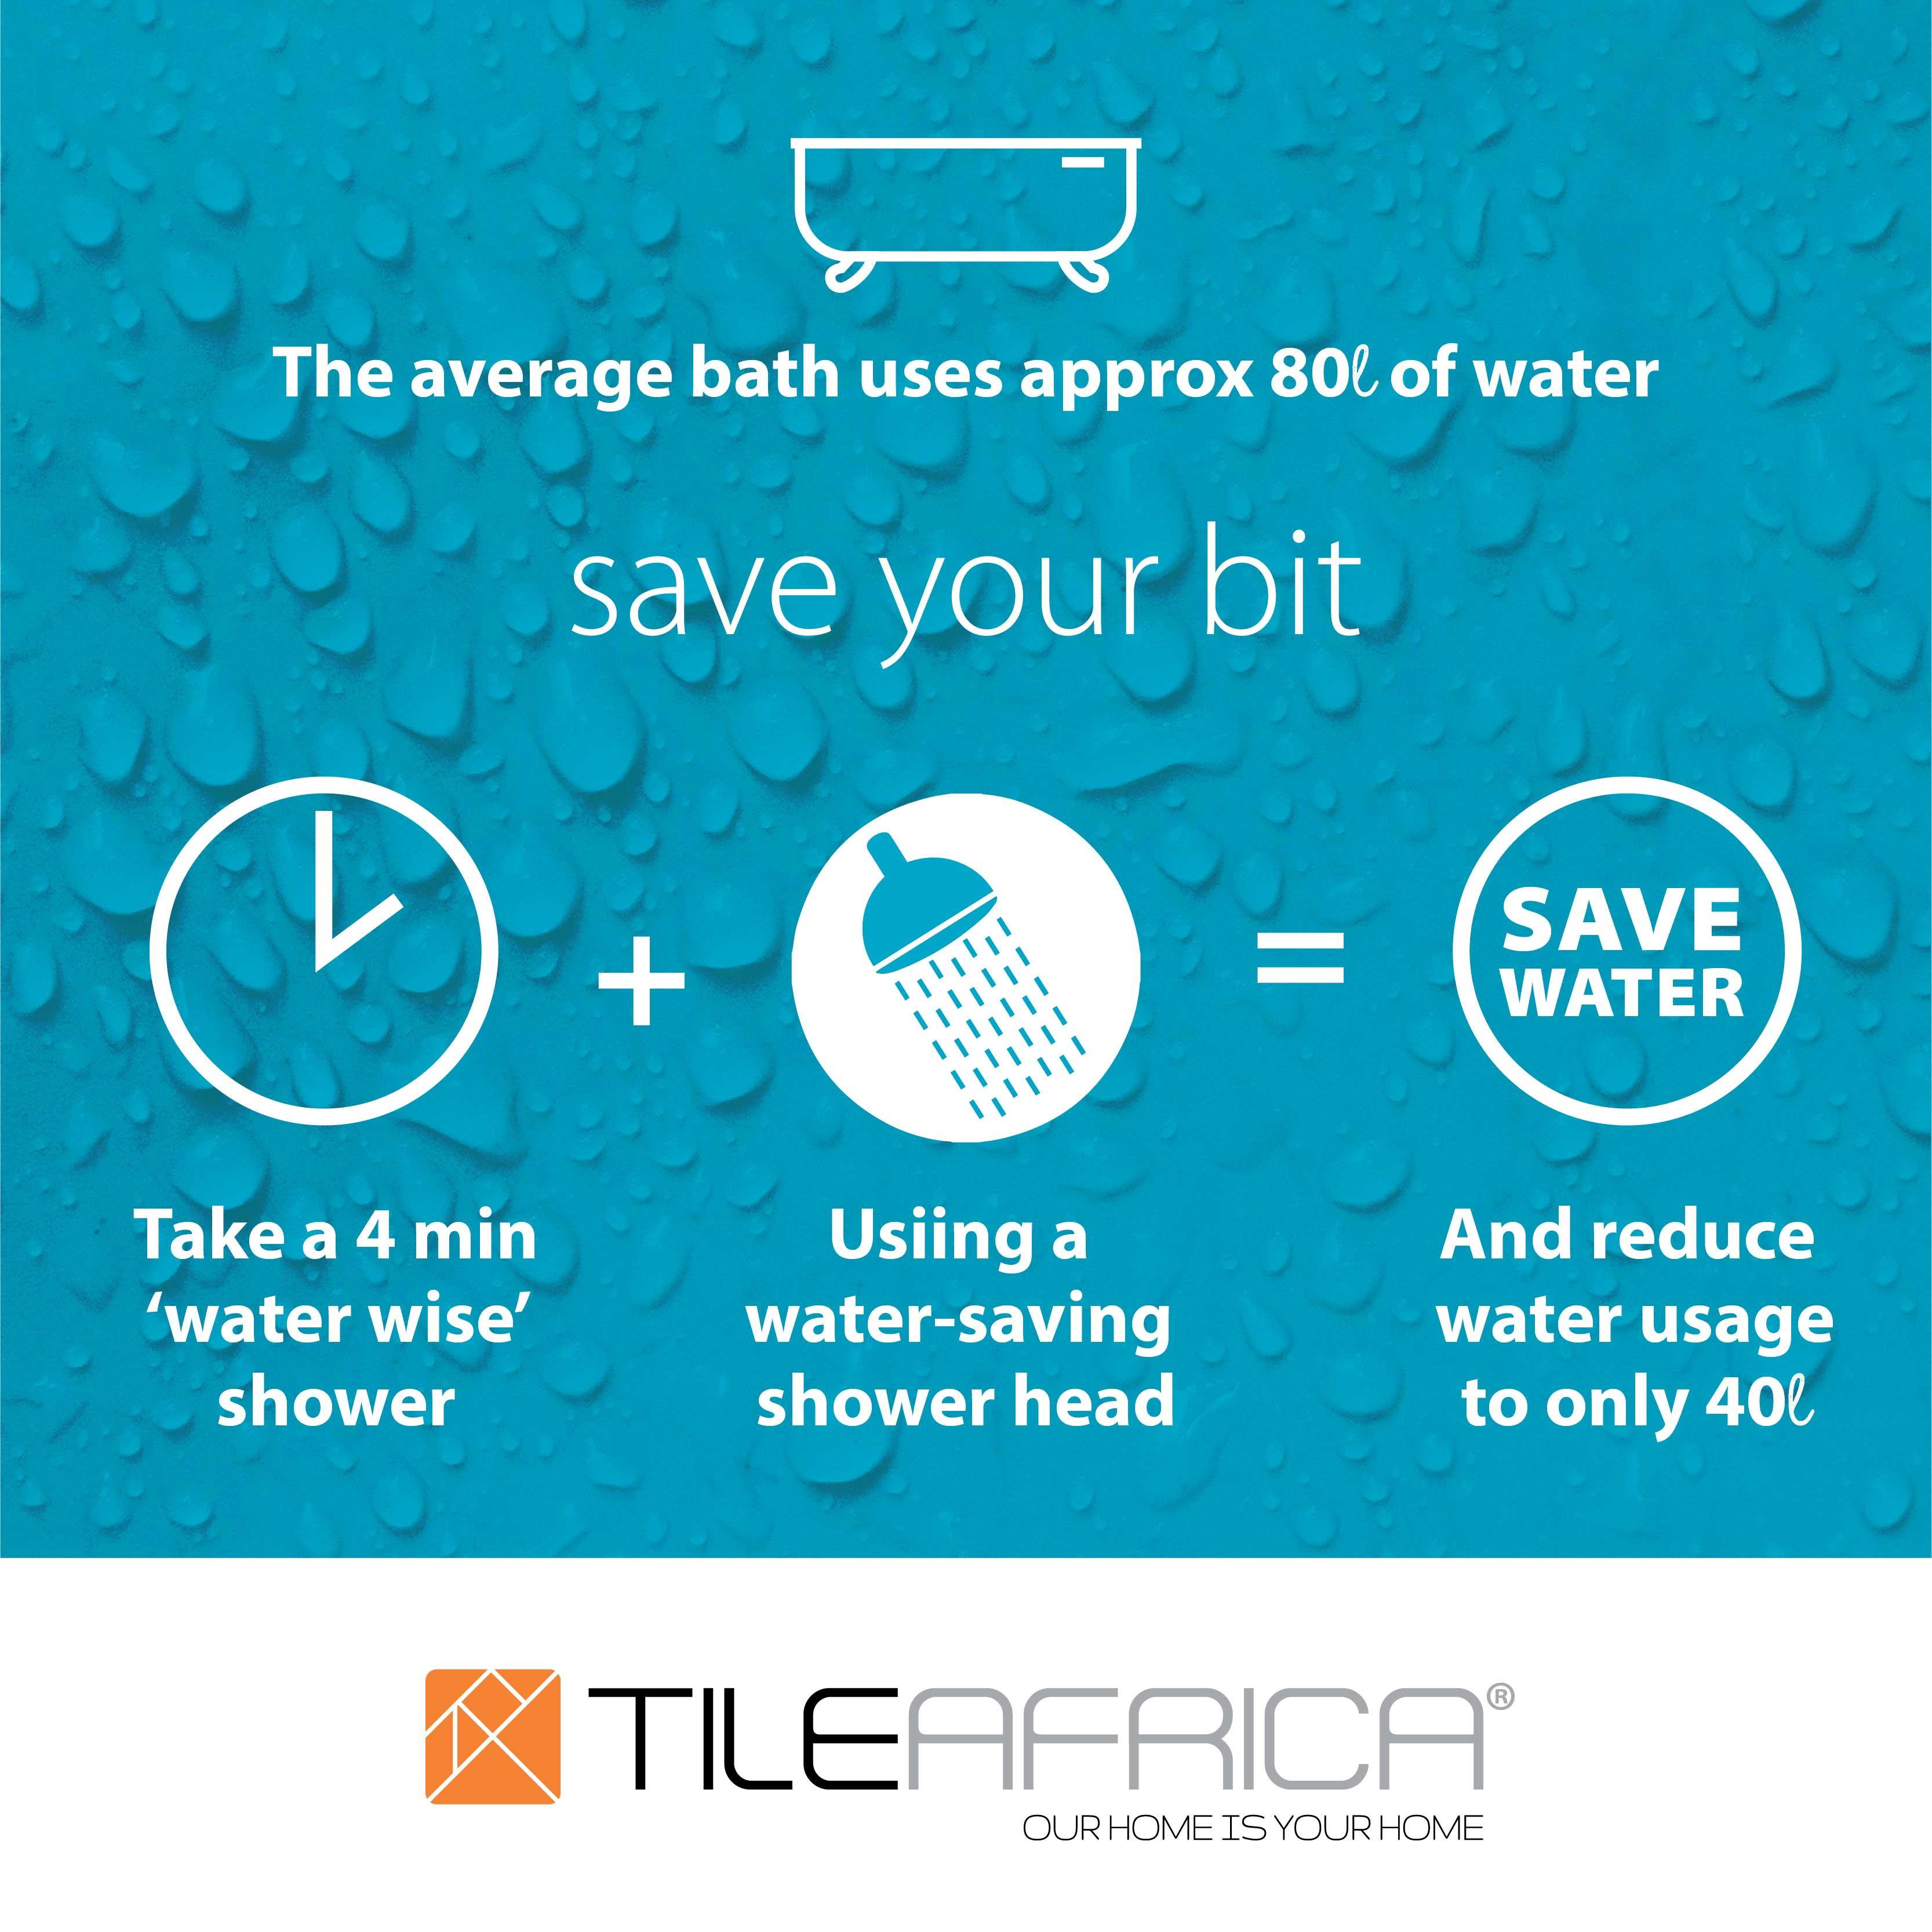 If You Take A 4 Minute Water Wise Shower Using A Water